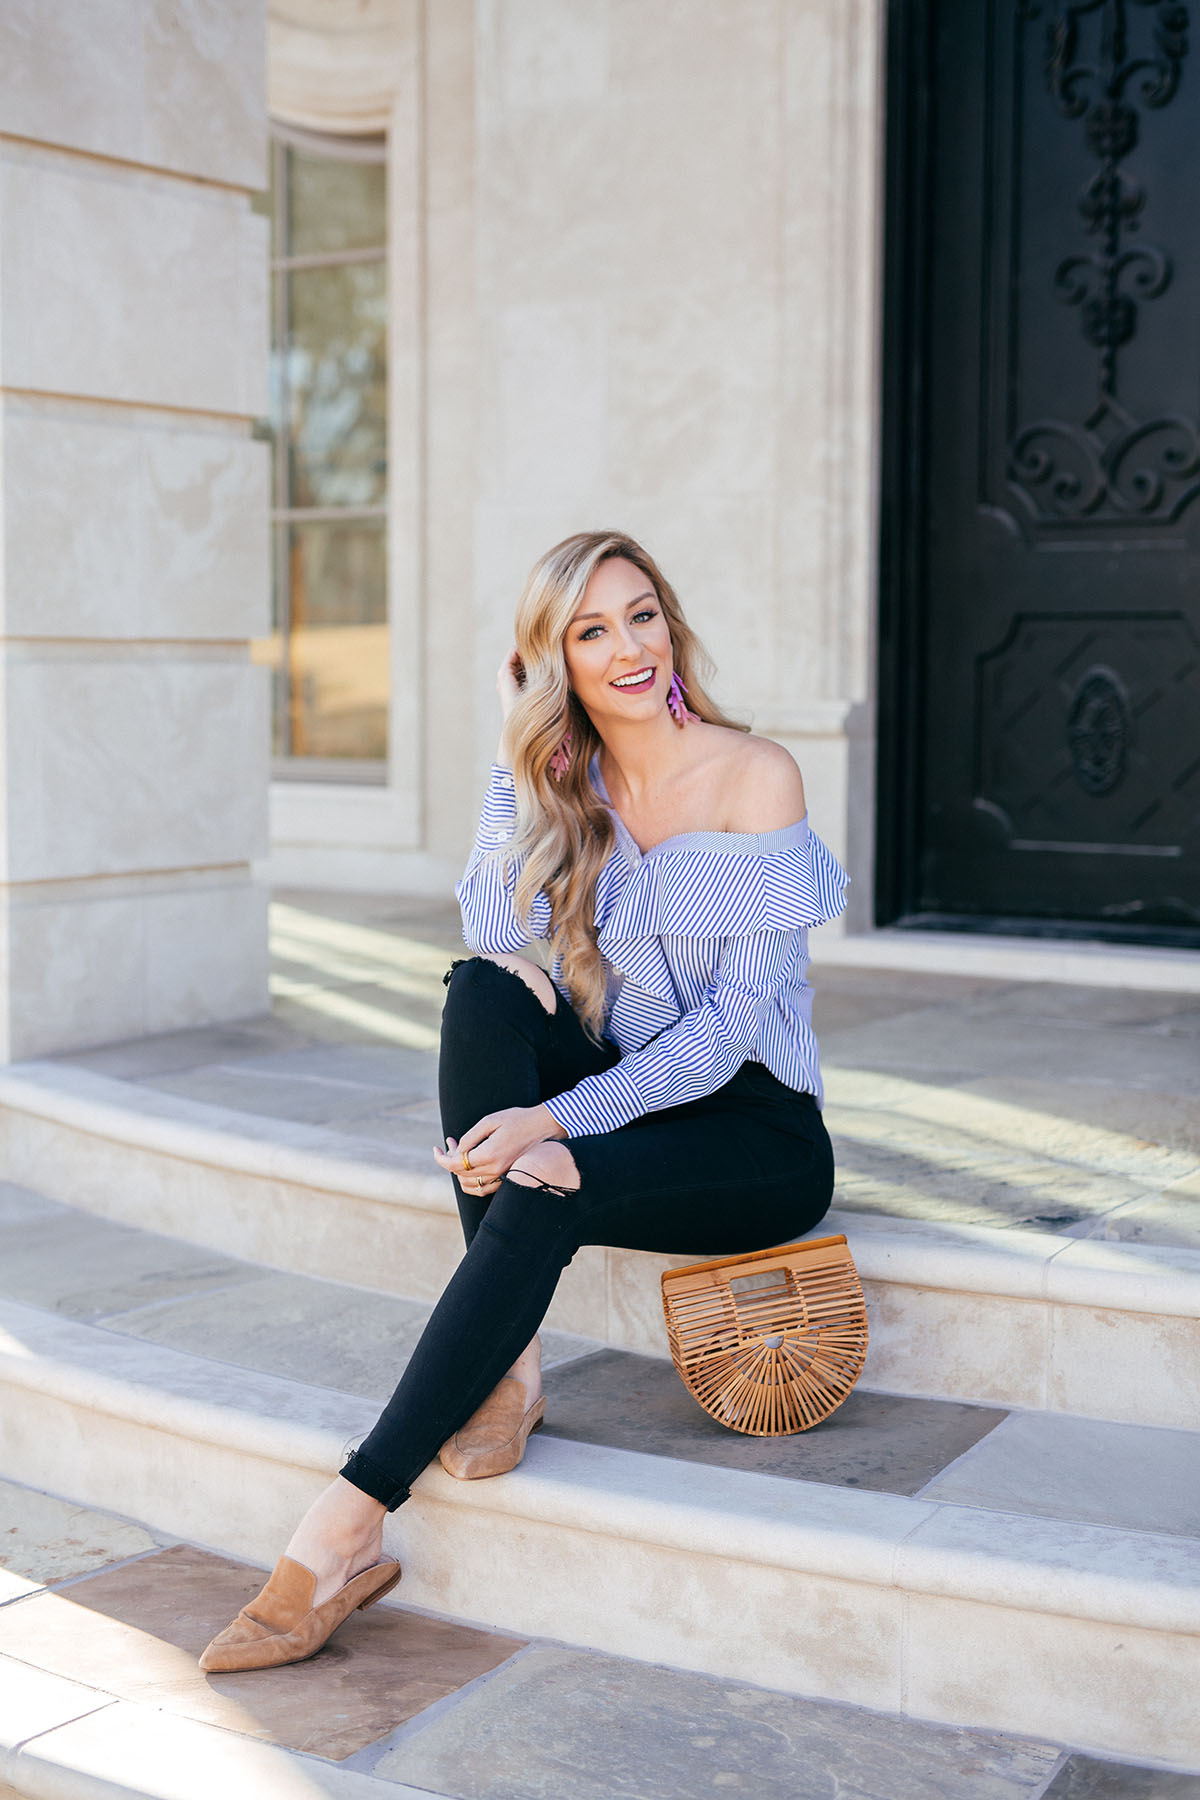 Transitional Spring Outfit Idea | Cult Gaia Bag | Pinstripe Top